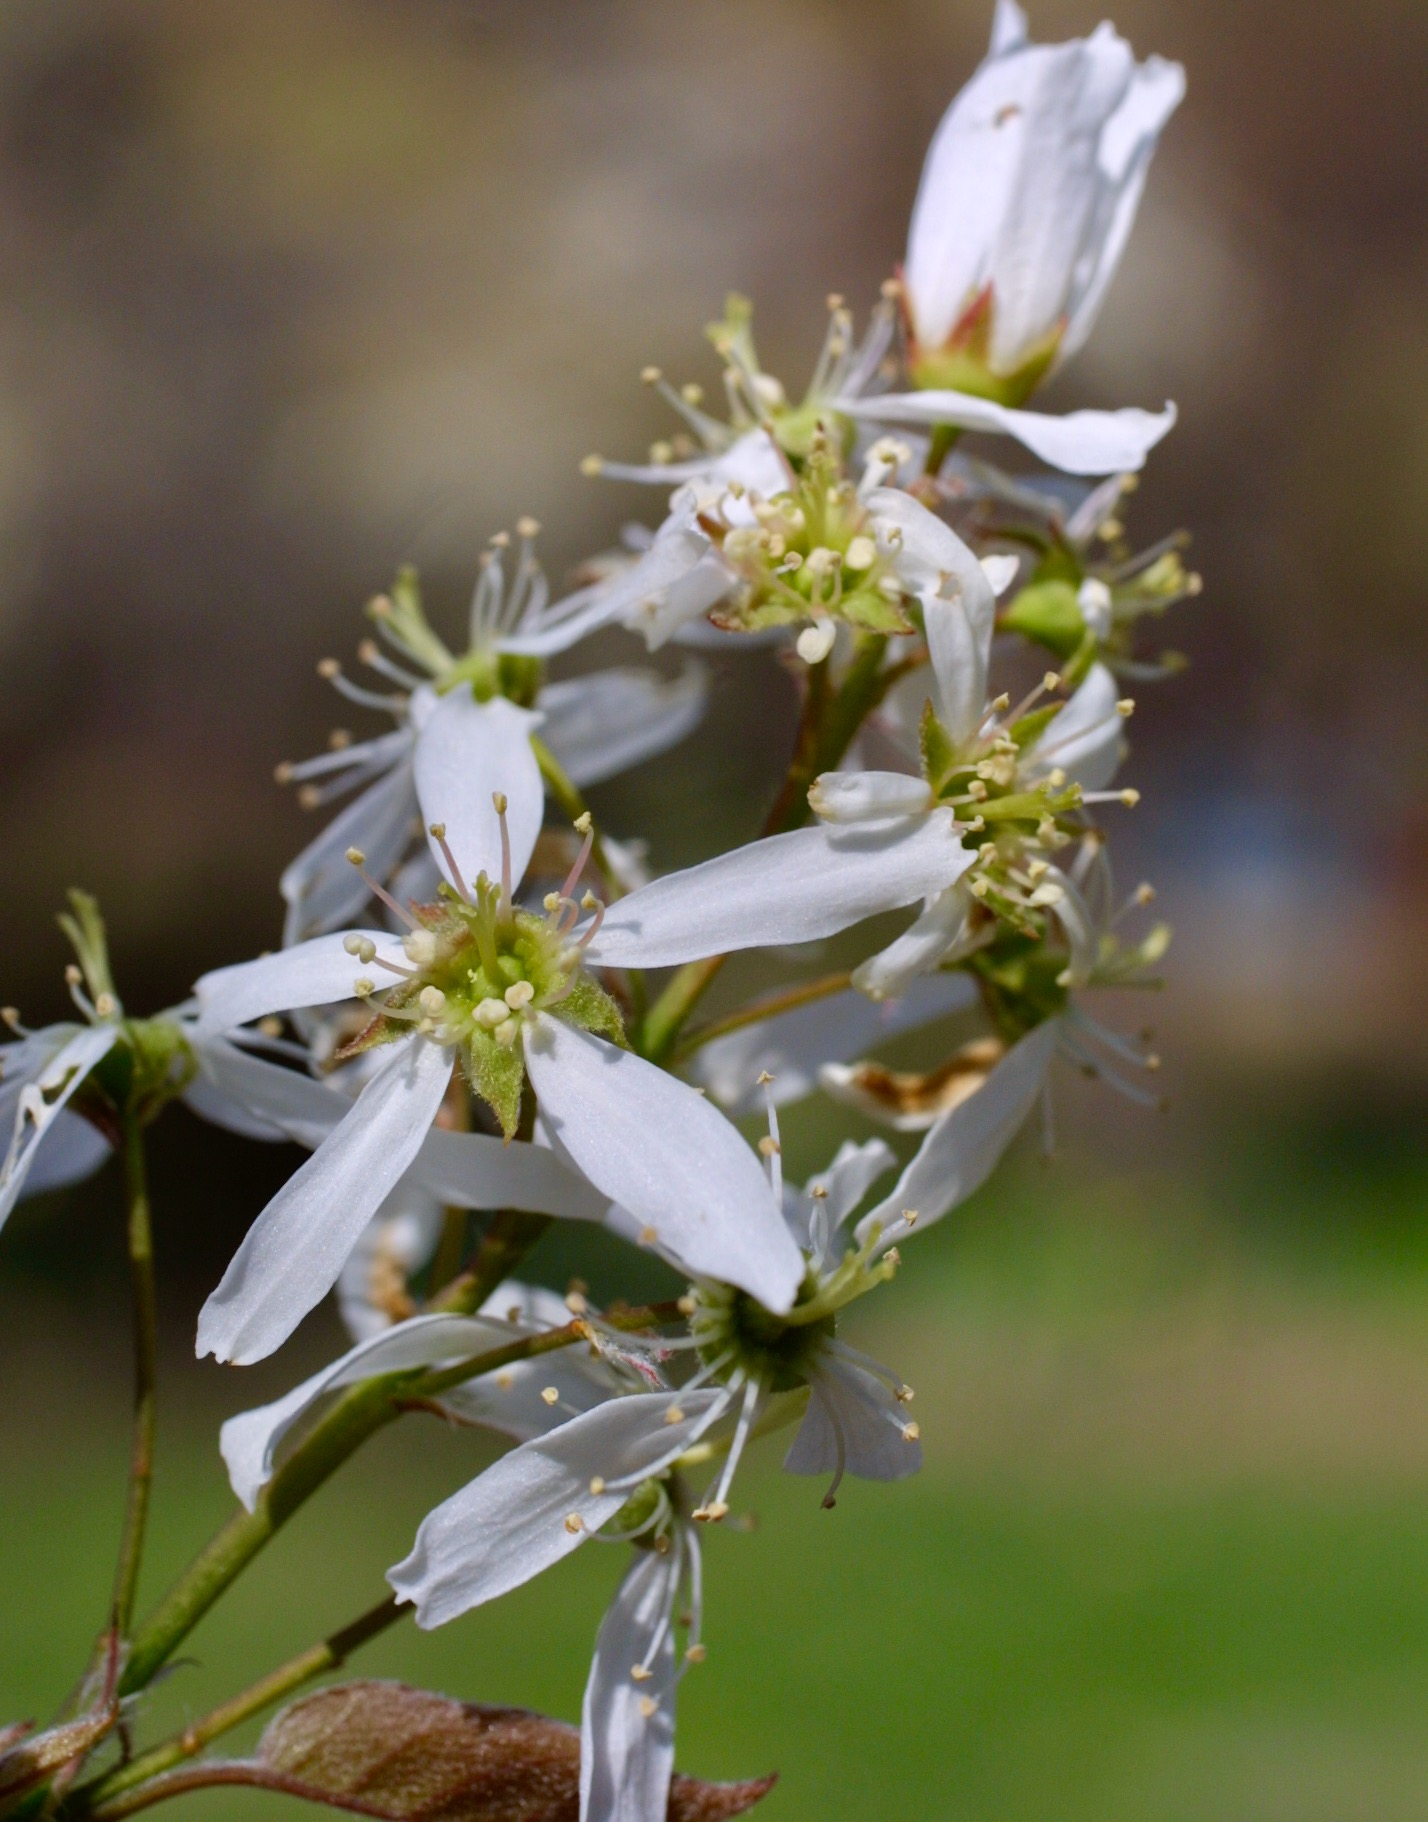 The Scientific Name is Amelanchier arborea. You will likely hear them called Downy Serviceberry, Shadbush, Shadtree, Sarvis Tree. This picture shows the Each flower has 5 petals and 5 sepals of Amelanchier arborea